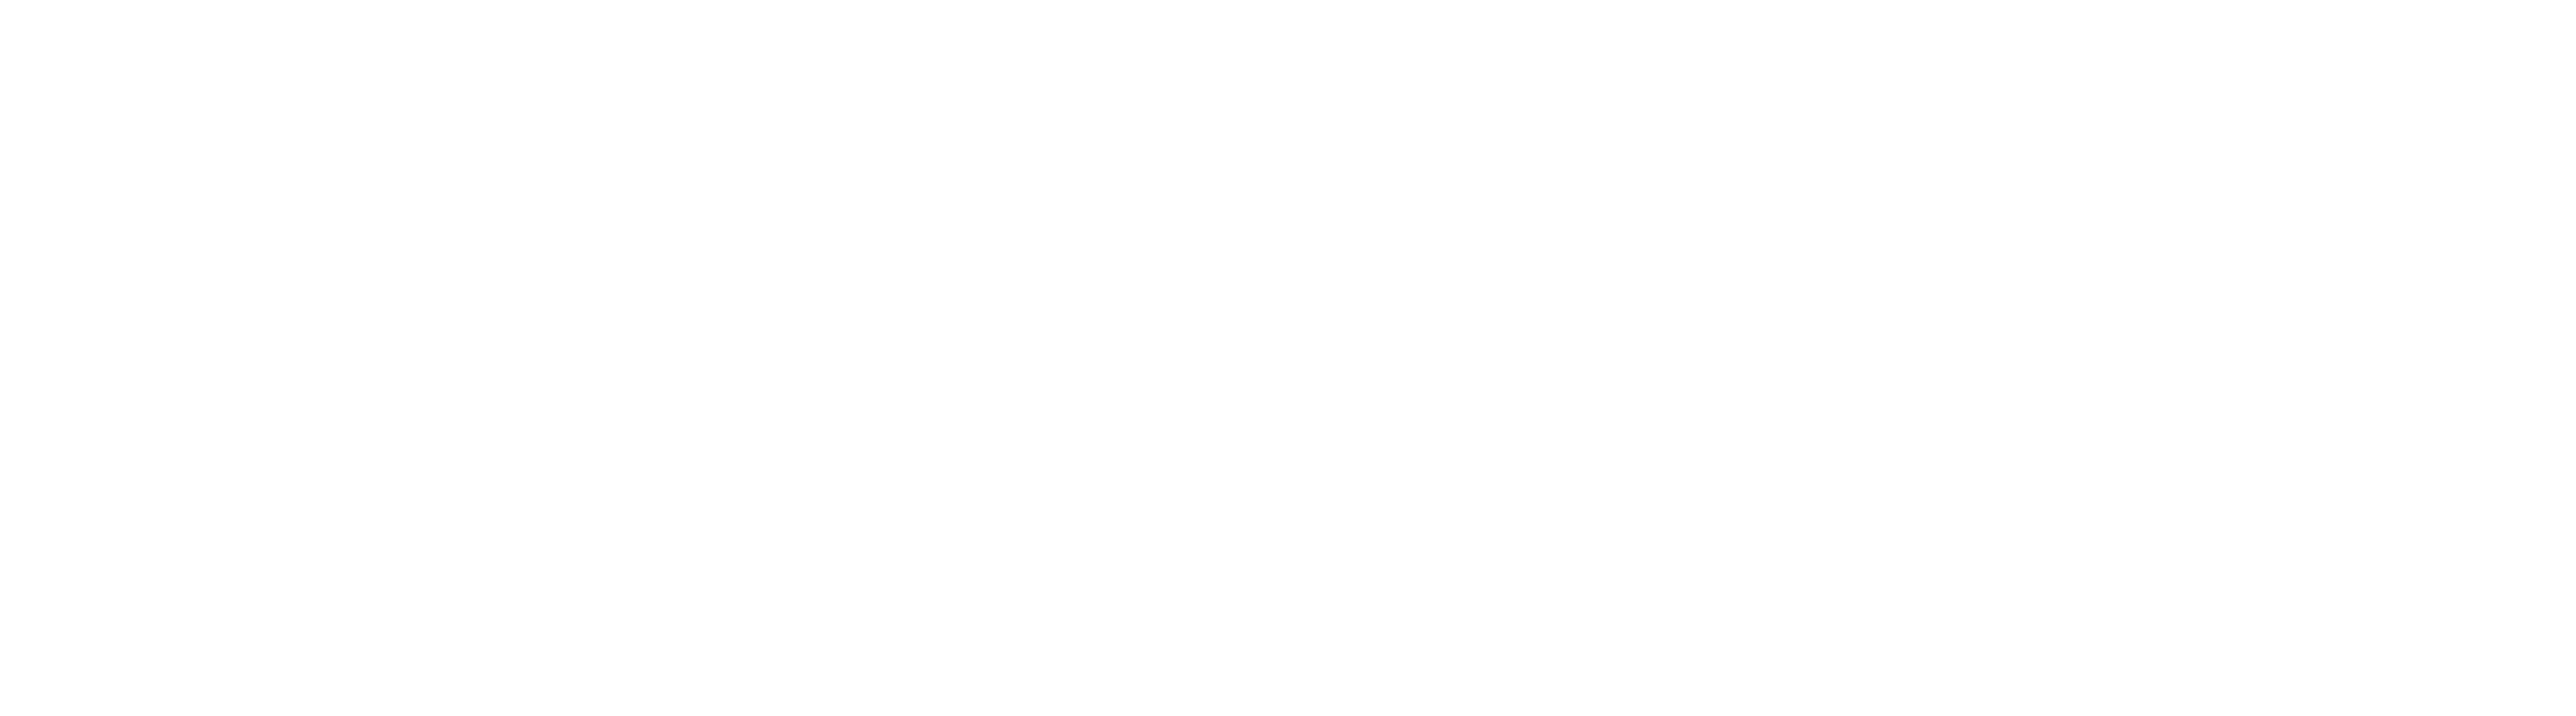 Optimum Biomedical Ltd.